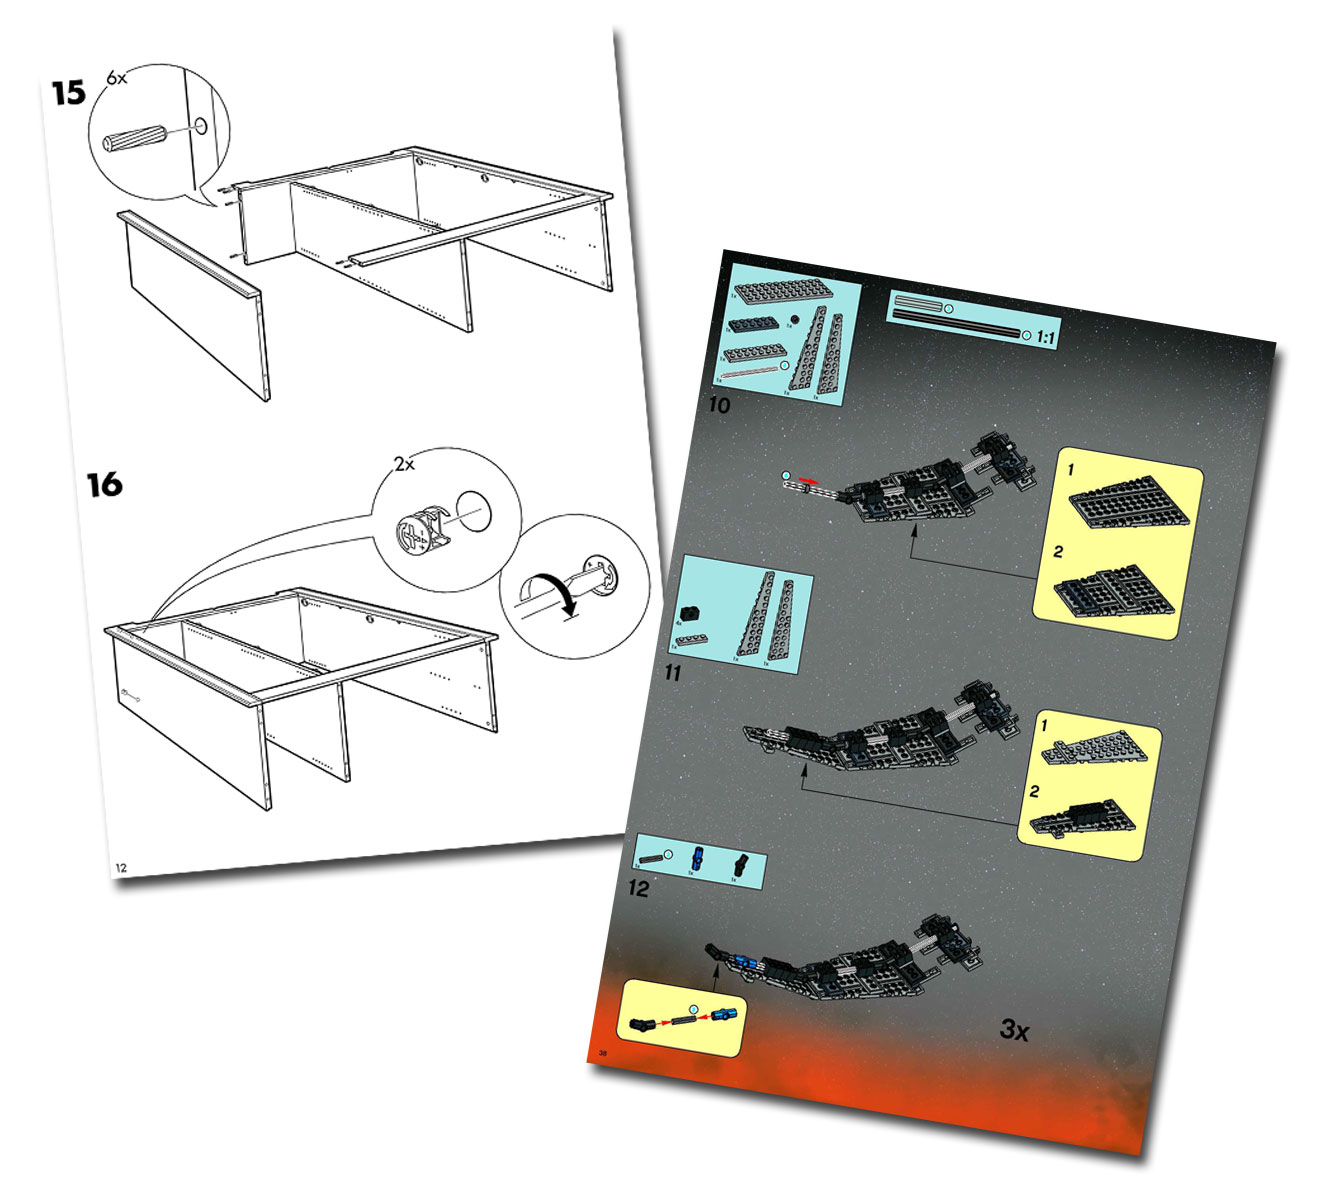 IKEA and LEGO assembly instructions